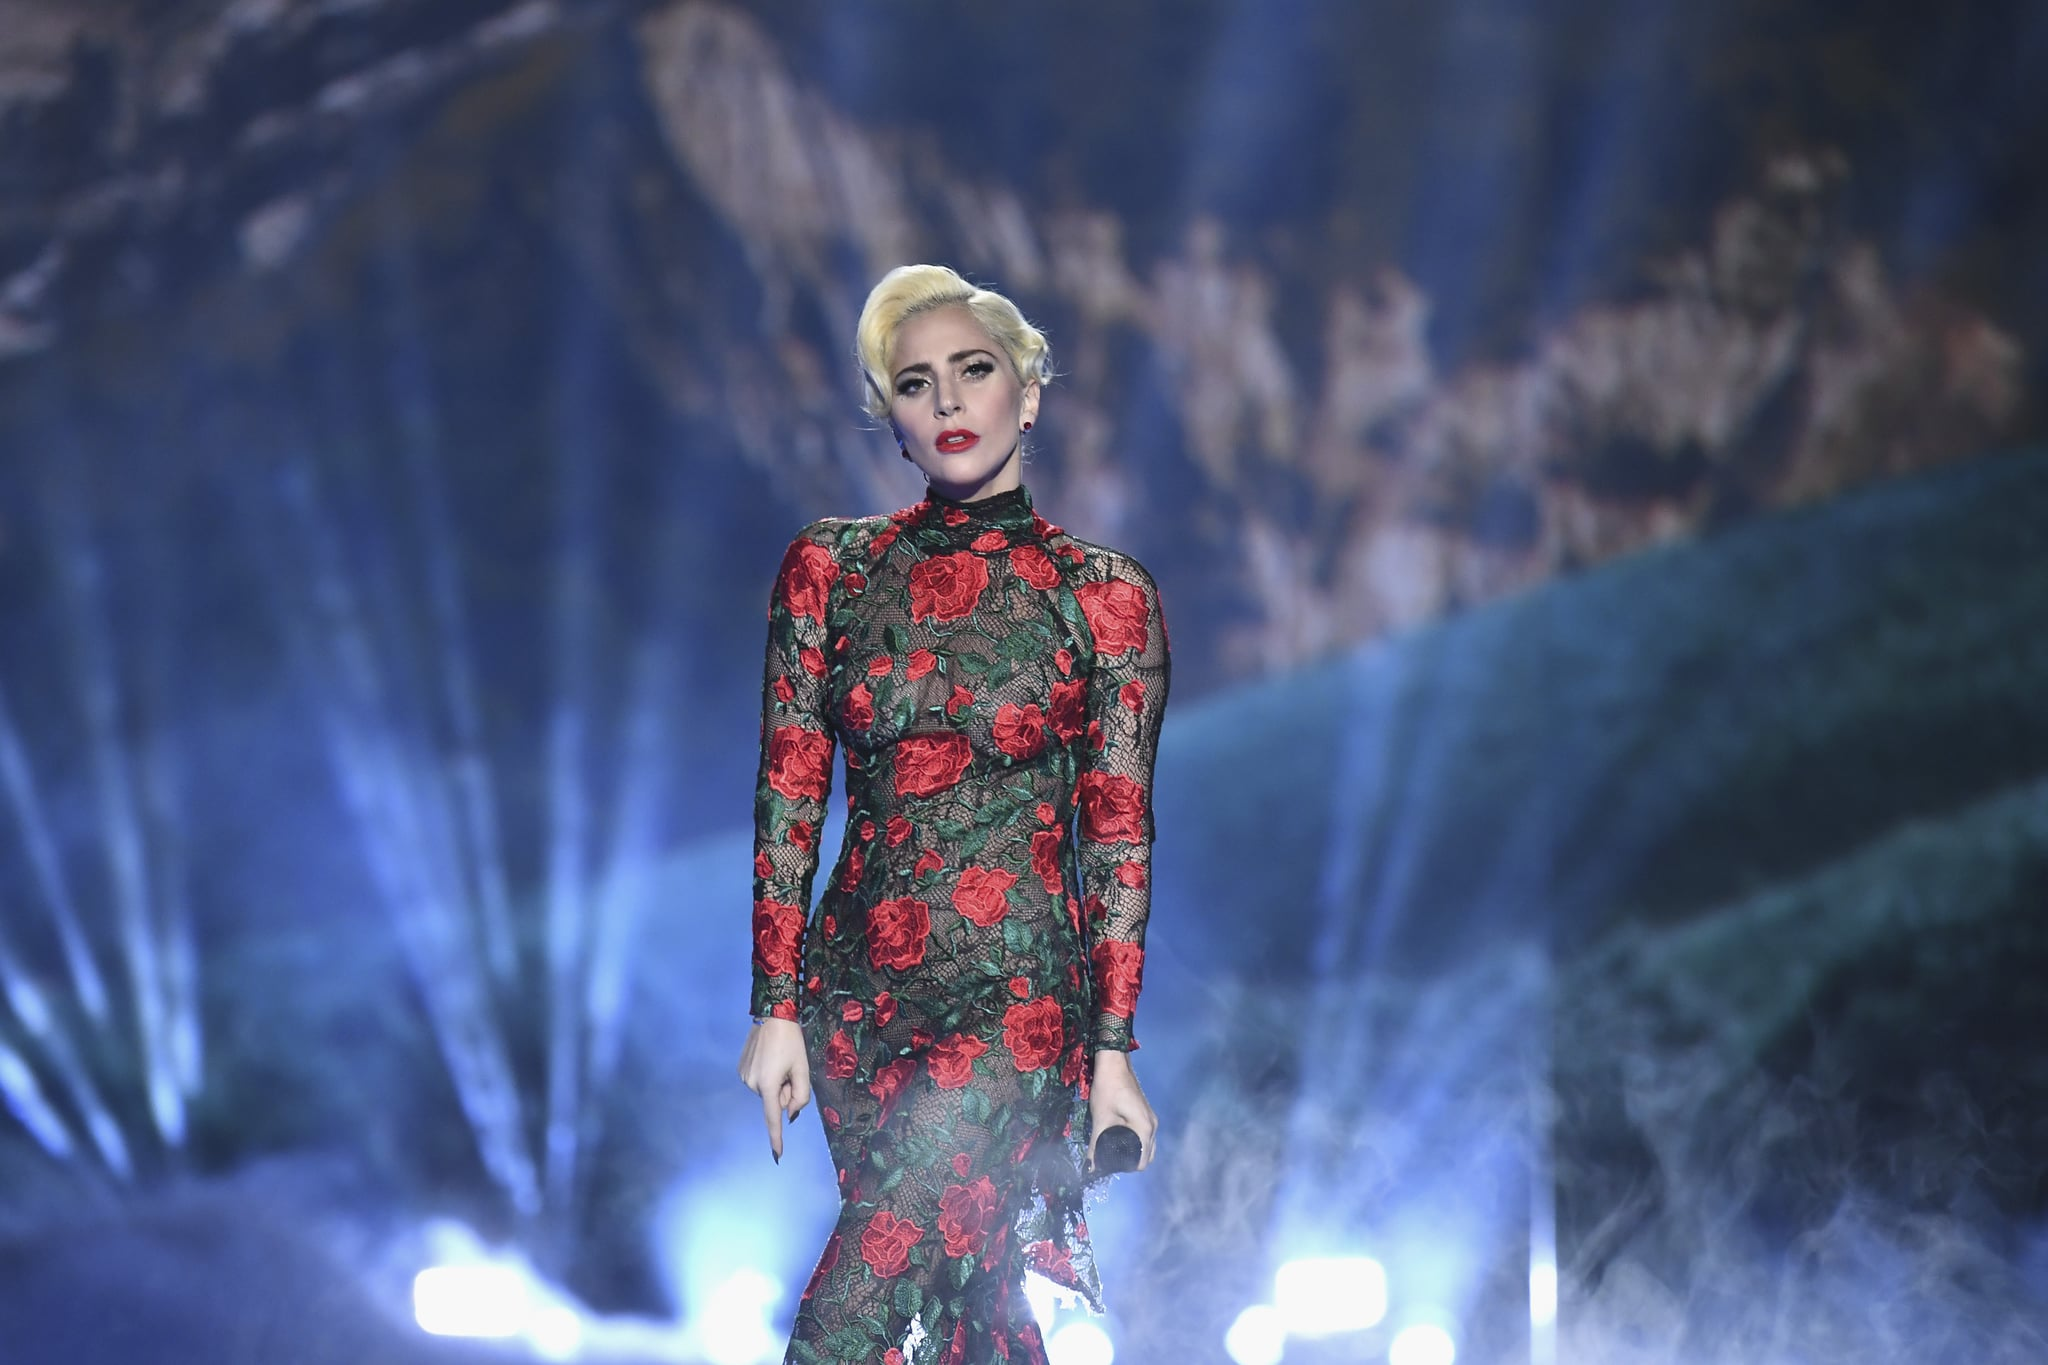 """Lady Gaga Pens an Emotional Letter About Life With PTSD: """"I Will Never Give Up on My Dreams"""""""